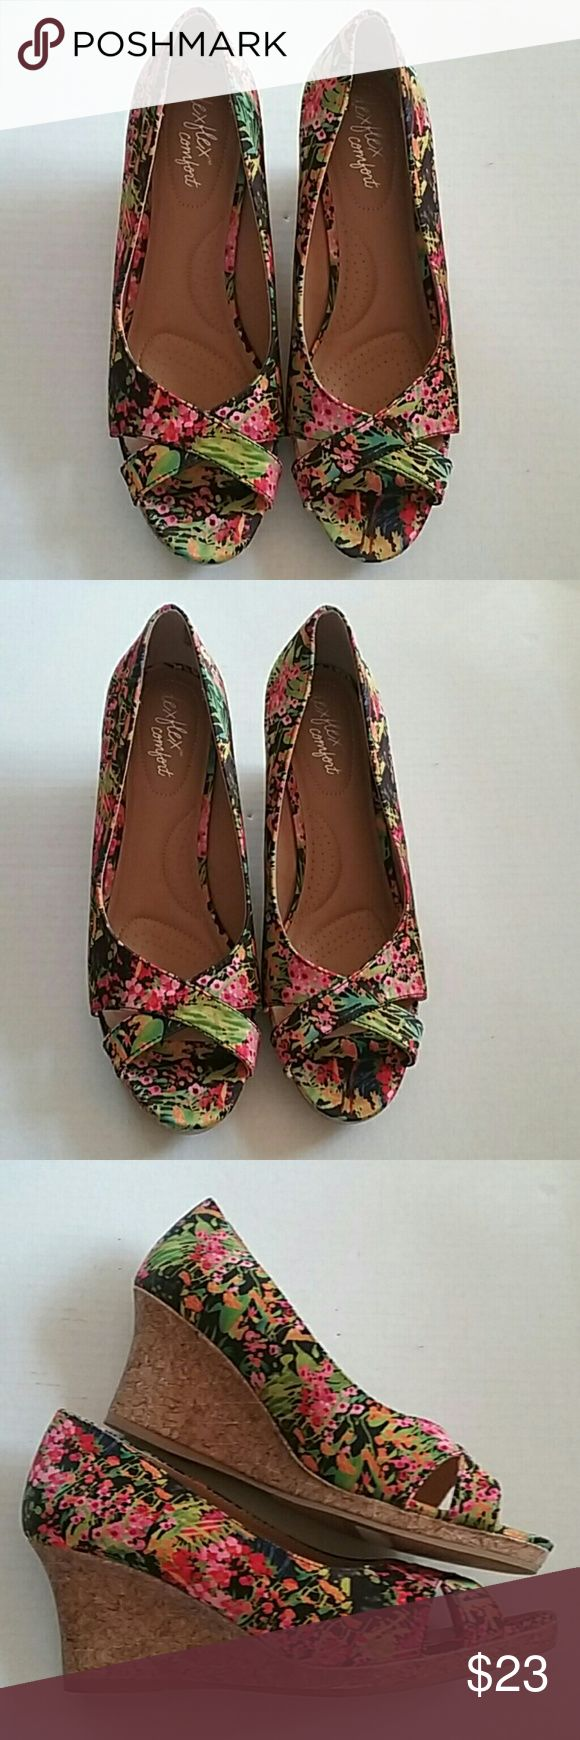 Dexflex comfort Floral summer platform wedge shoes This is a like new pair of Dexflex Wildly floral wedge platform sandals. I wear a true size 8 and they were comfortable on me.  THEY ARE IN LIKE NEW CONDITION.  Ladies size 8.5 Dexflex Shoes Sandals